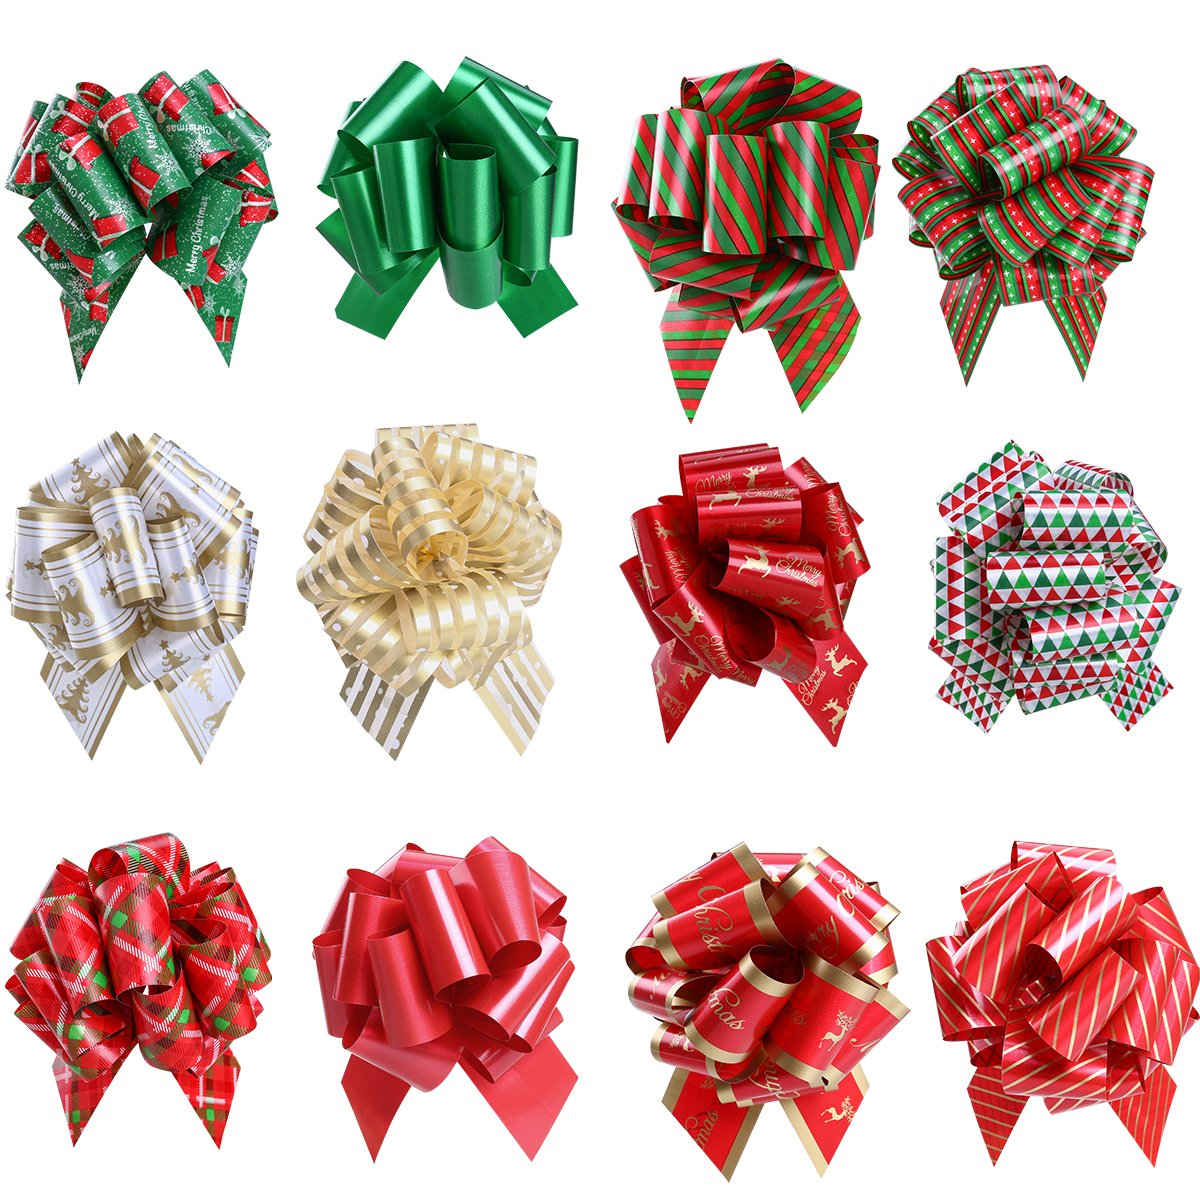 Amazon 100 pack of large christmas gift tags in 10 assorted unomor gift pull bows for new year gift christmas decorations pack of 12 negle Choice Image